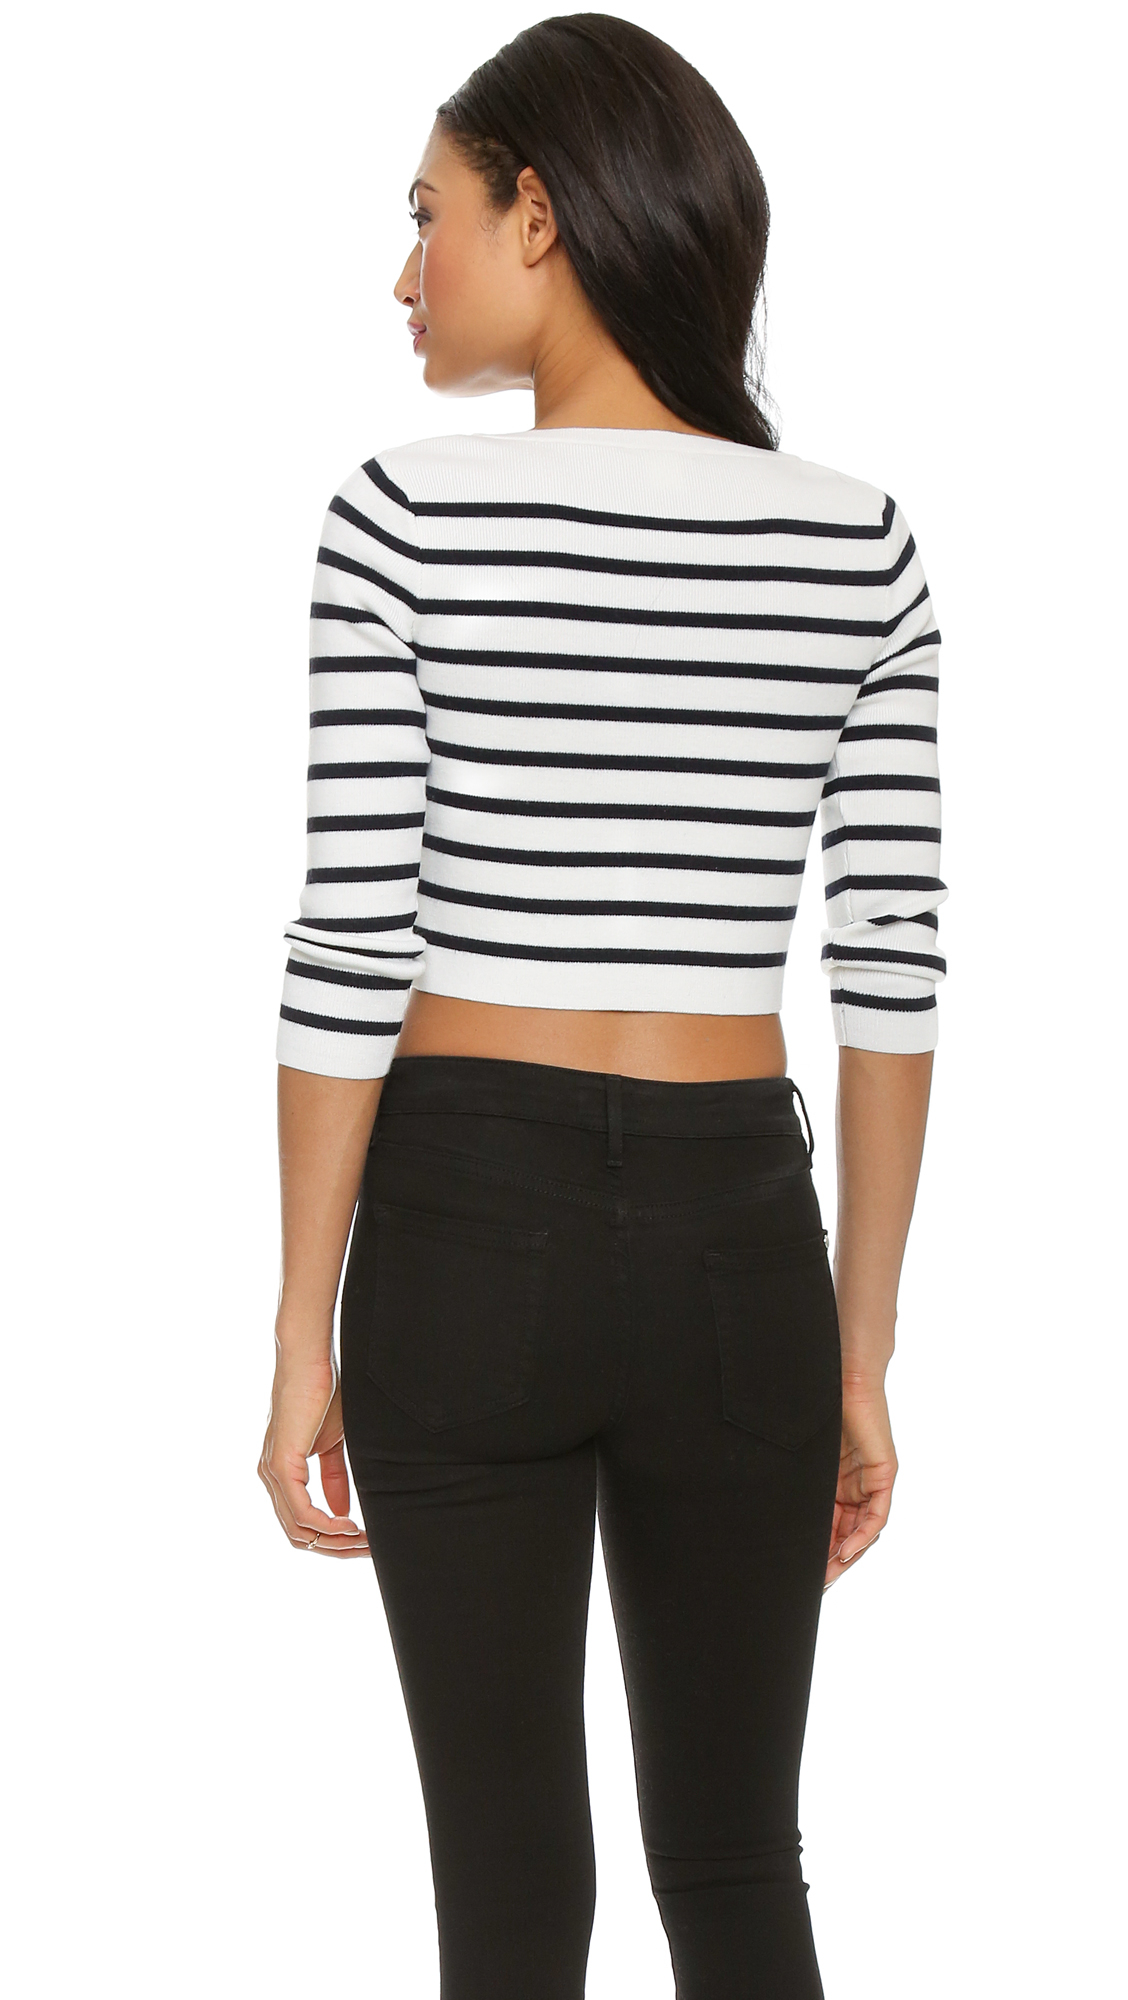 Club monaco Lizeth Cropped Sweater - Navy Stripe in Blue | Lyst